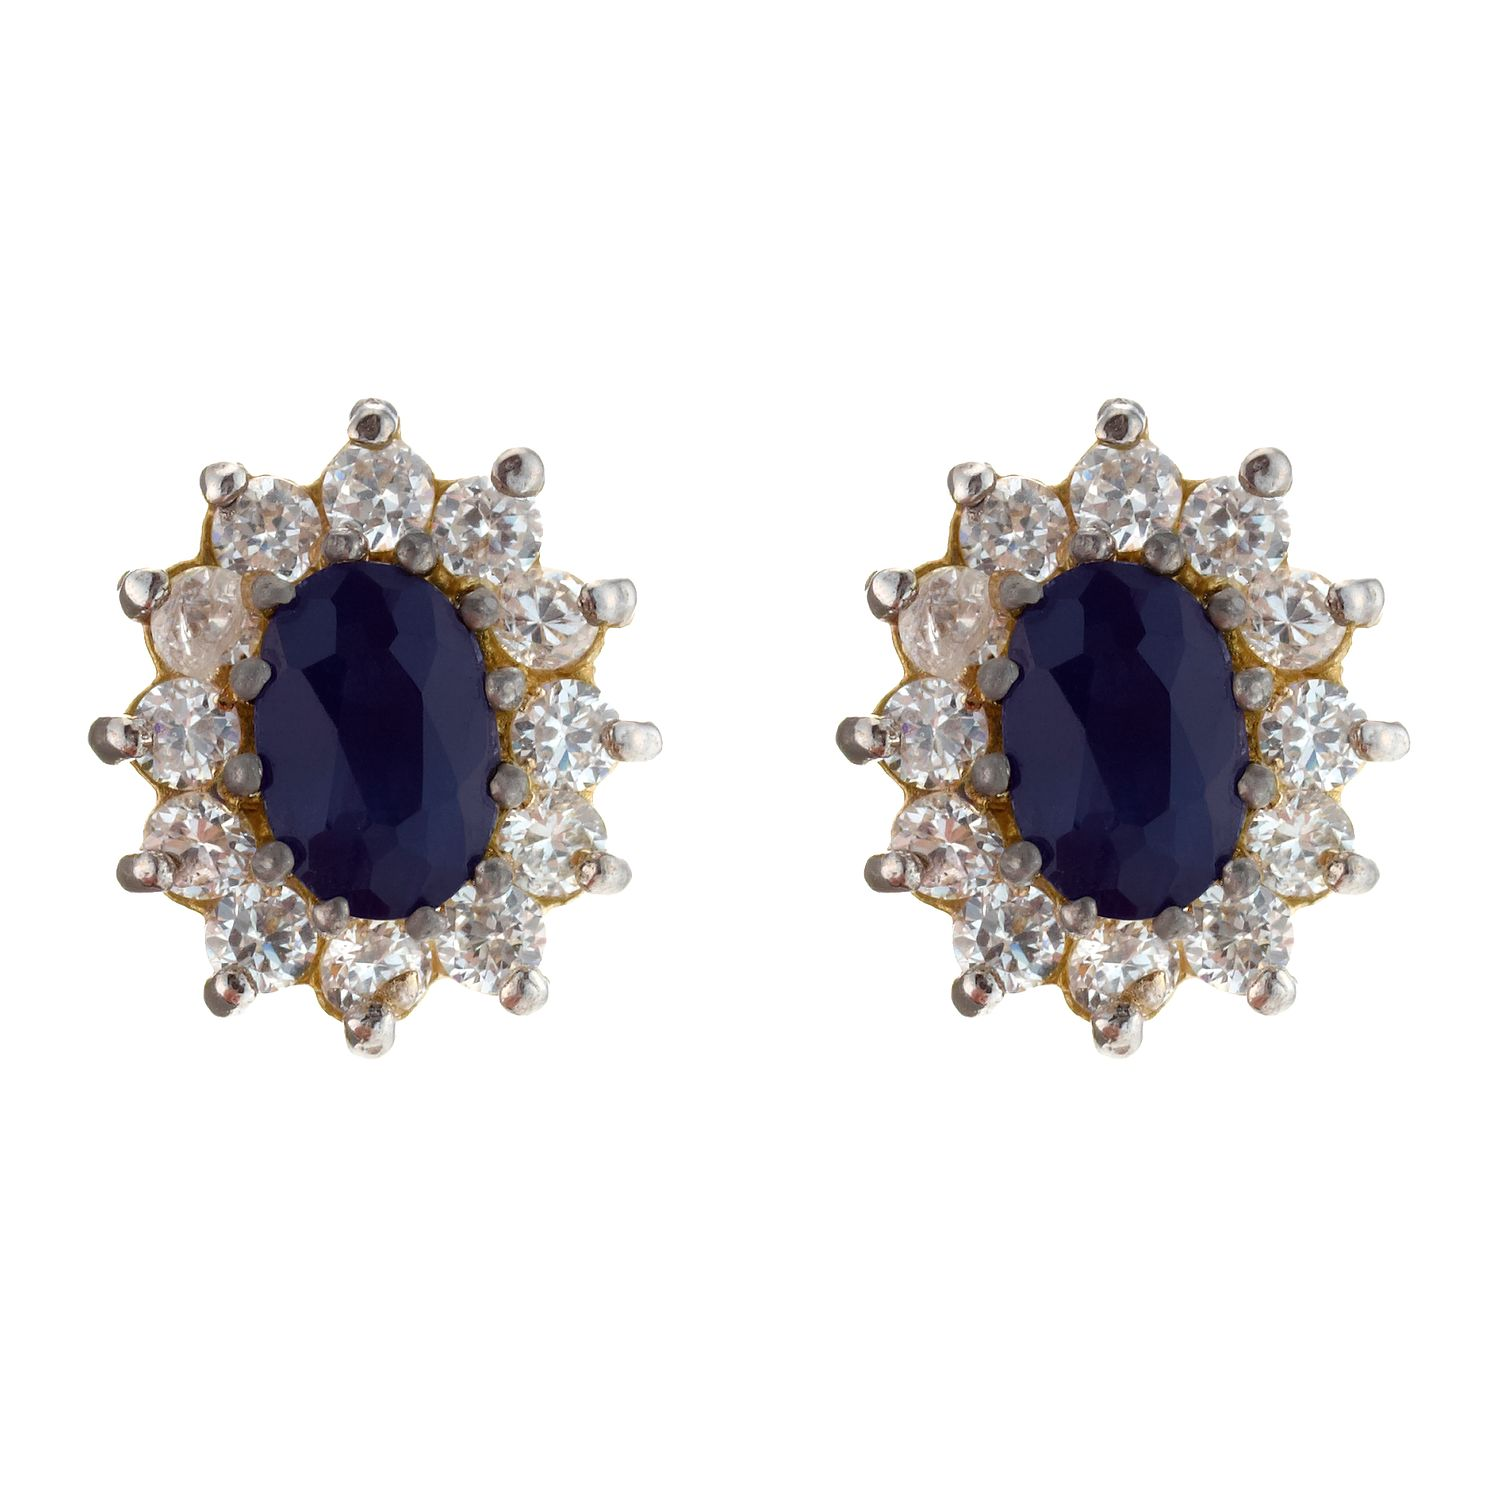 9ct Gold Sapphire & Cubic Zirconia Oval Cluster Earrings - Product number 4268369